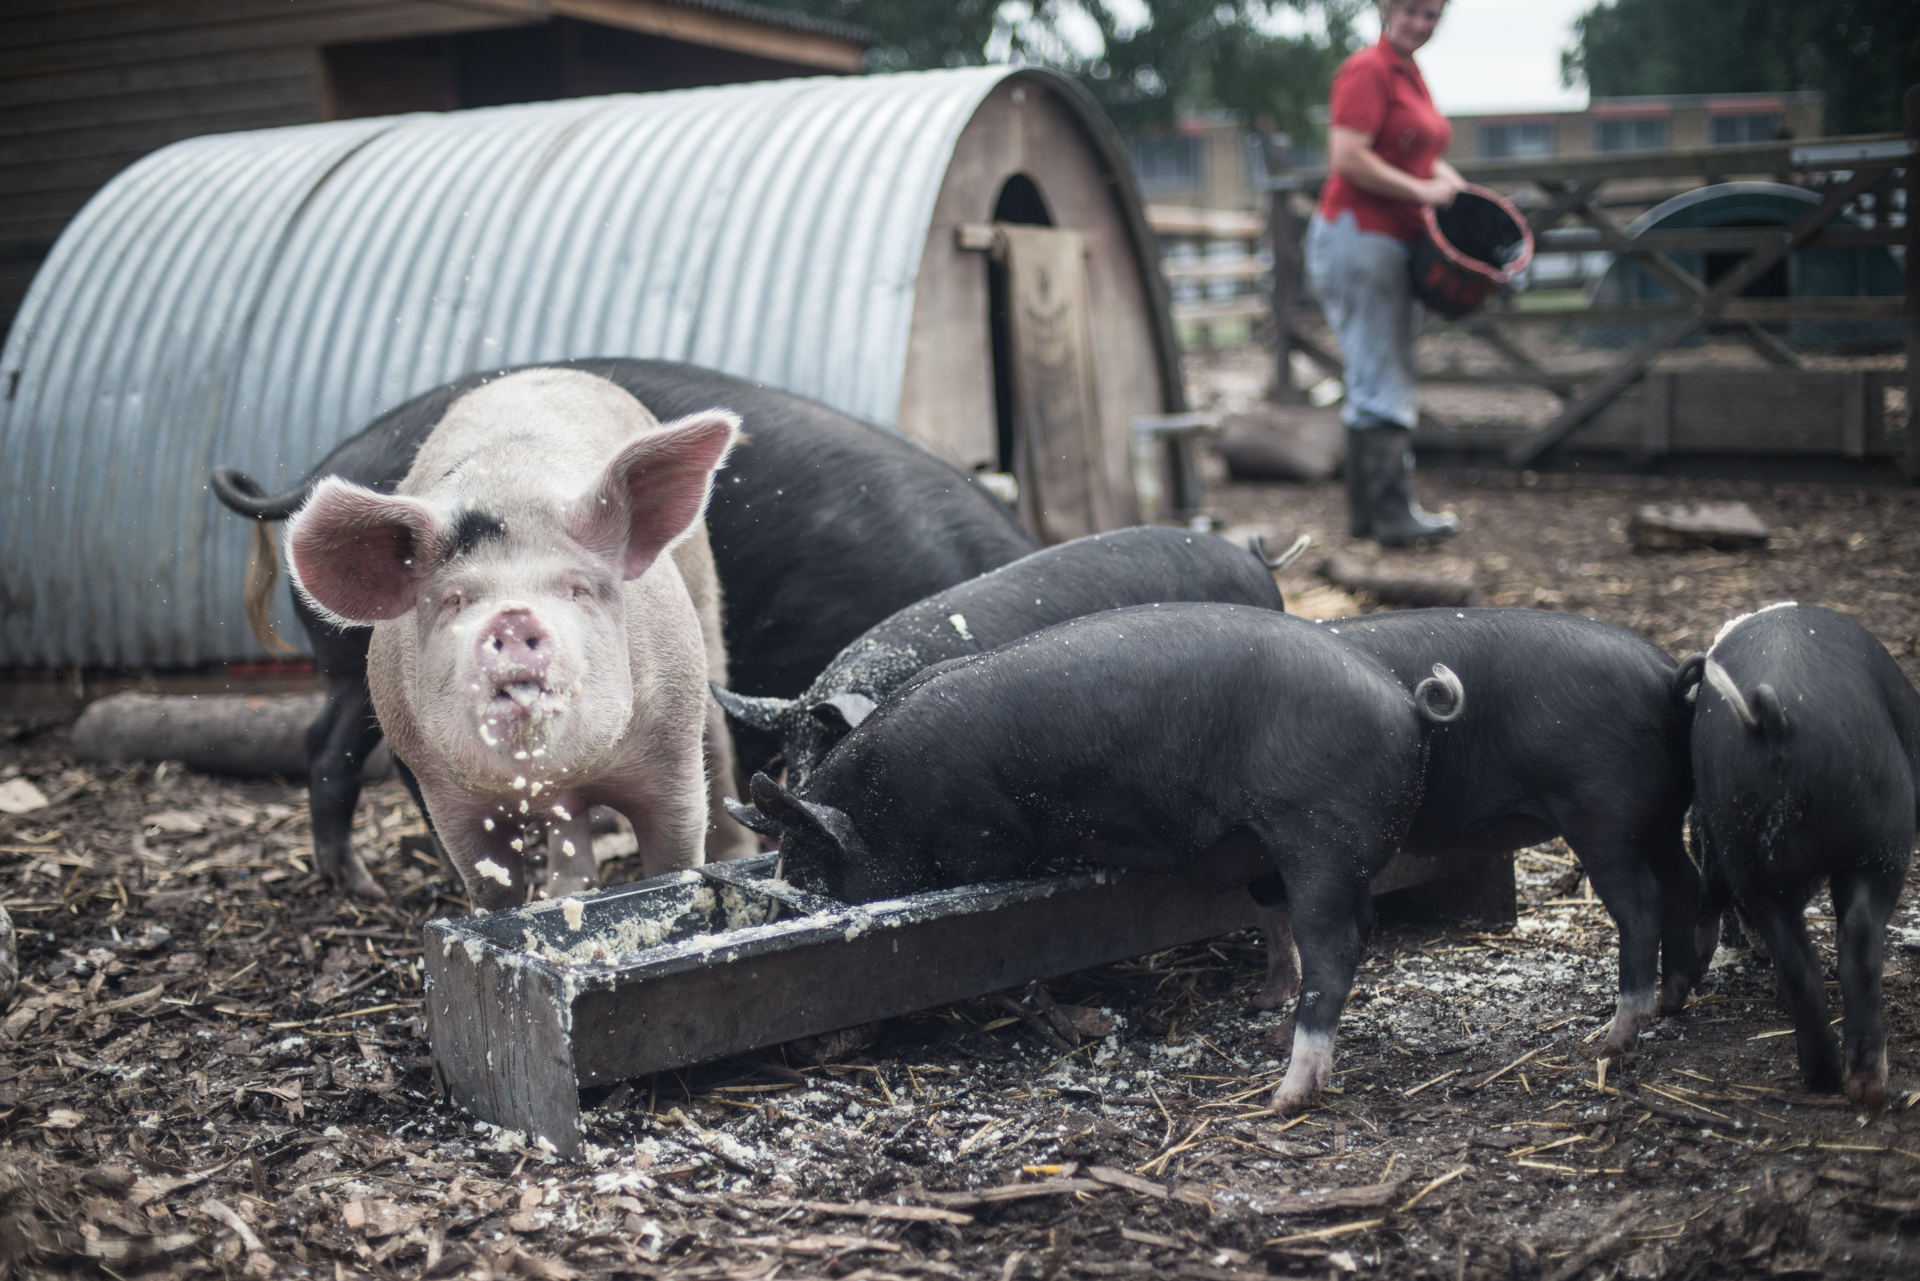 The Pig Idea - Documenting food waste in the UK - Chris King Photography